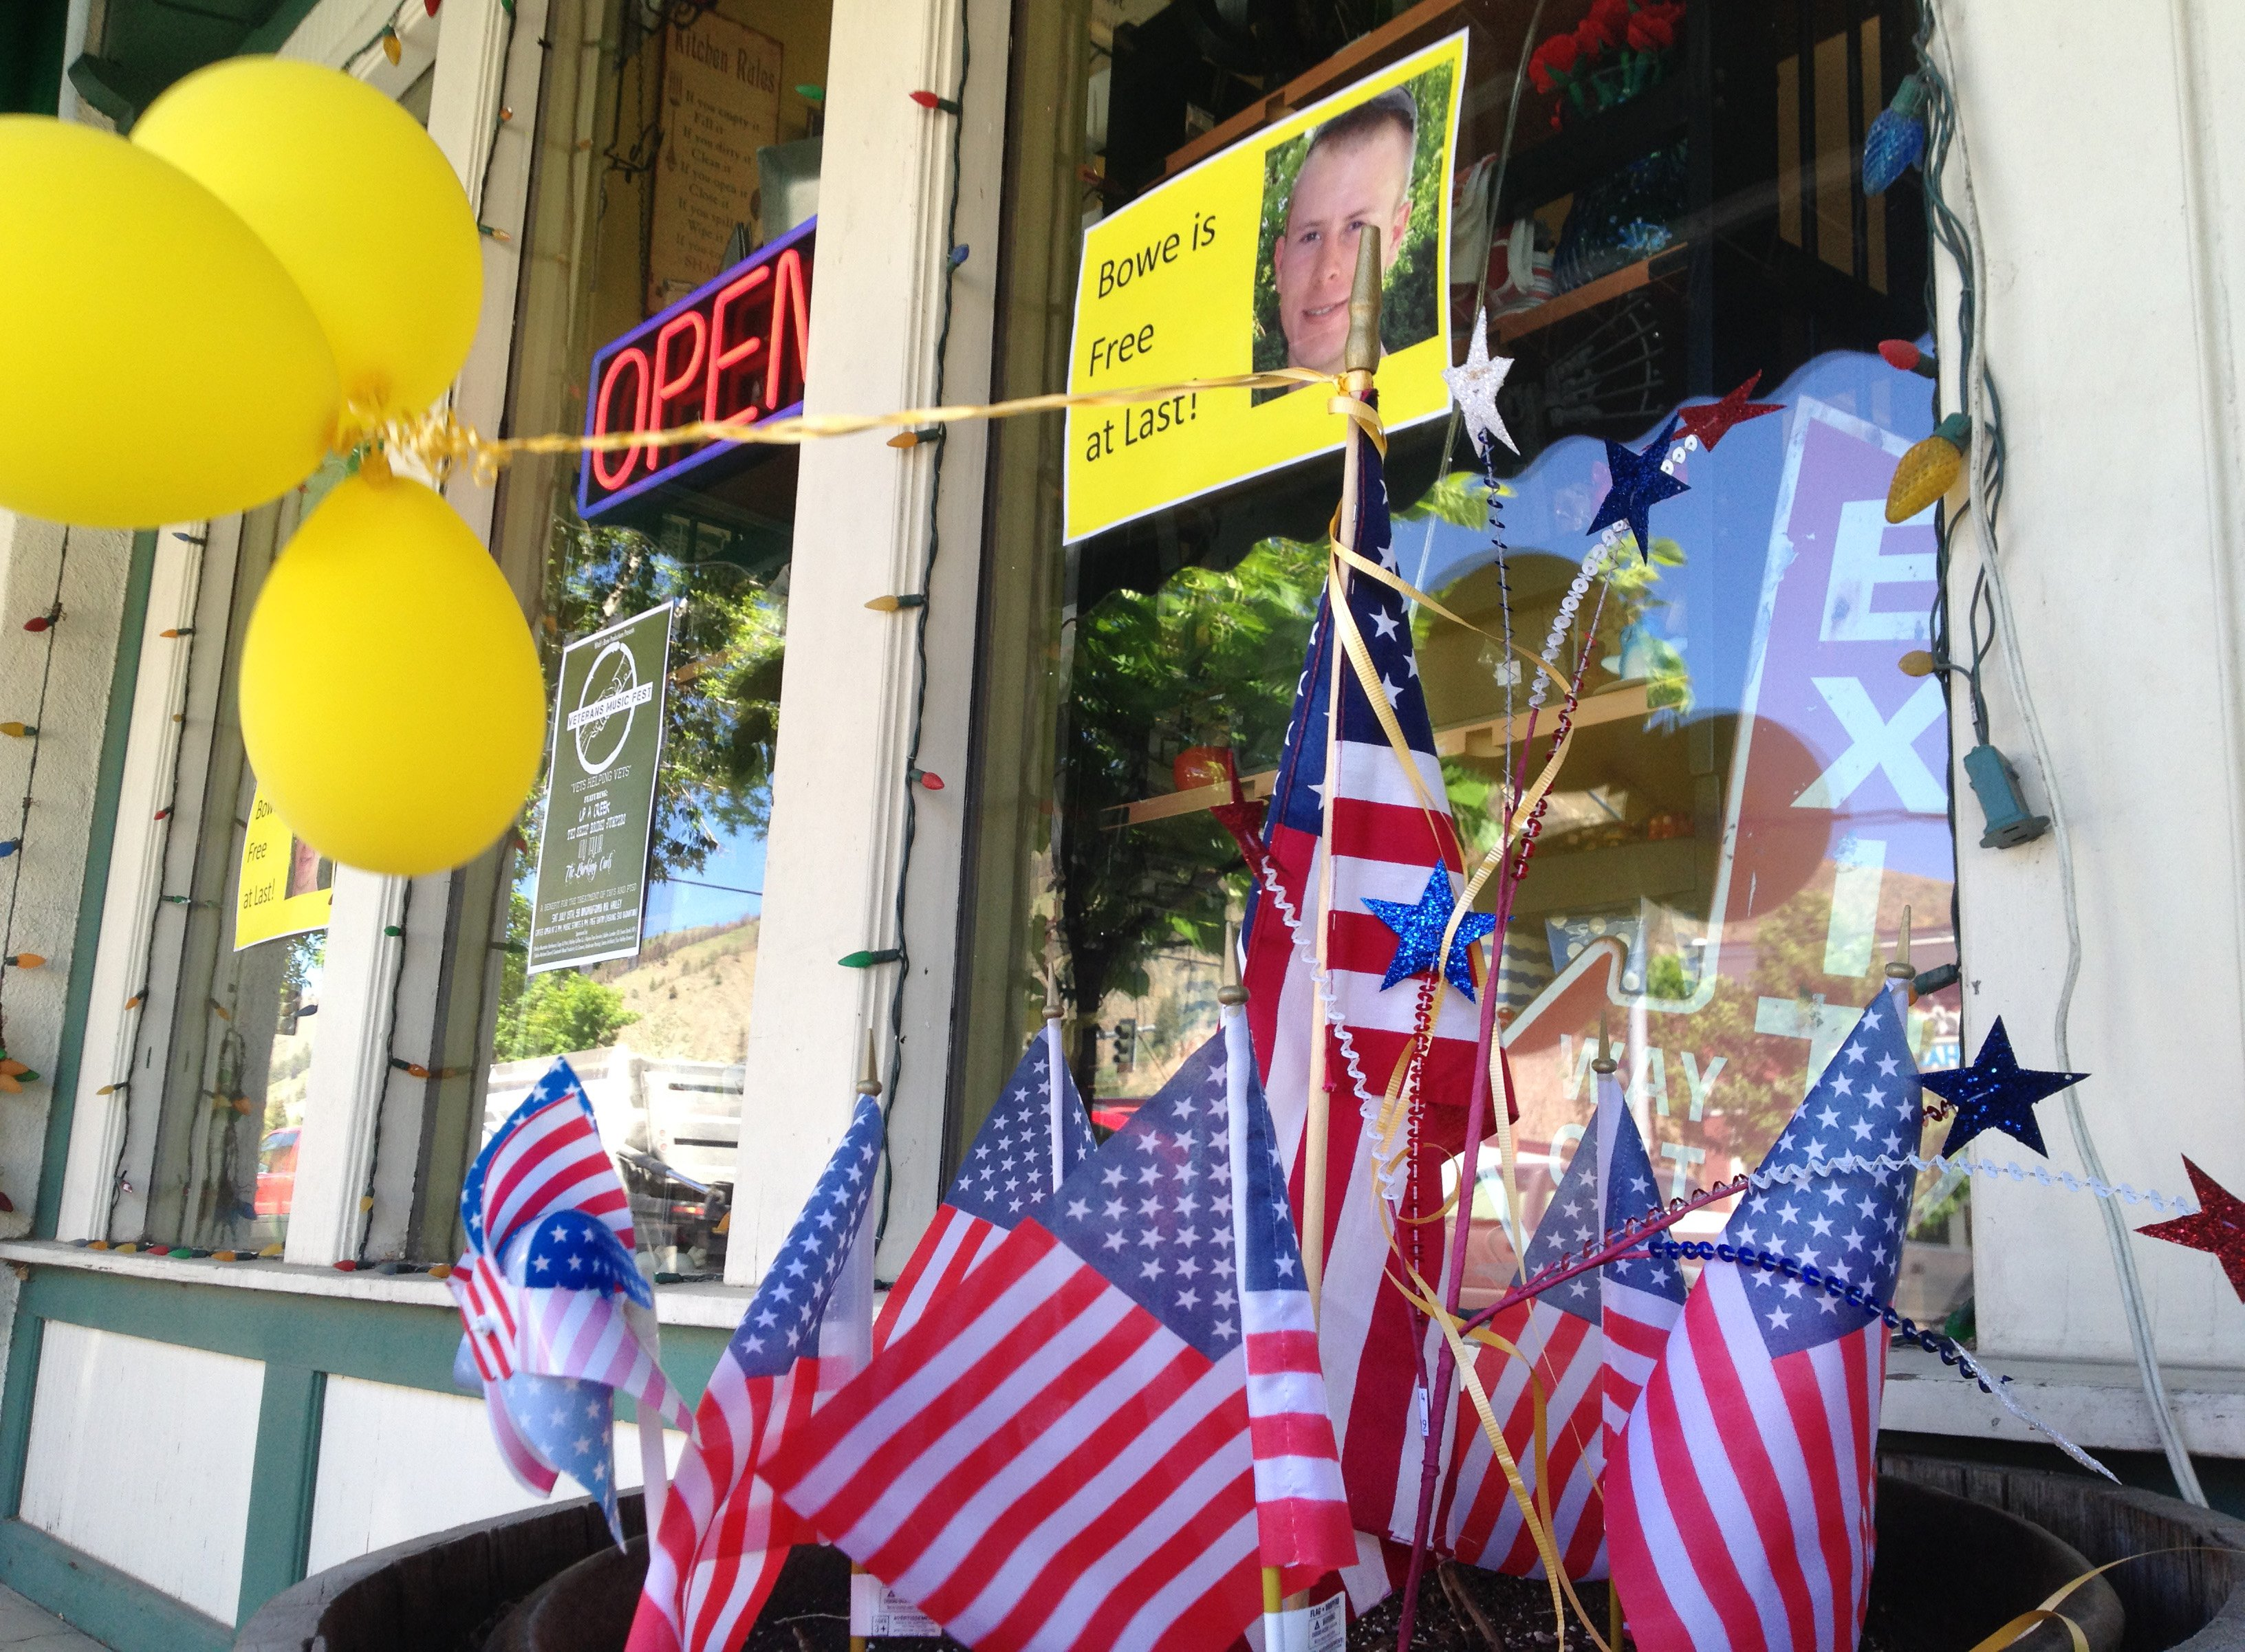 Flags and balloons, marking the release from captivity of Sgt. Bowe Bergdahl, adorn the sidewalk outside a shop in the soldier's hometown of Hailey, Idaho, on June 4, 2014.